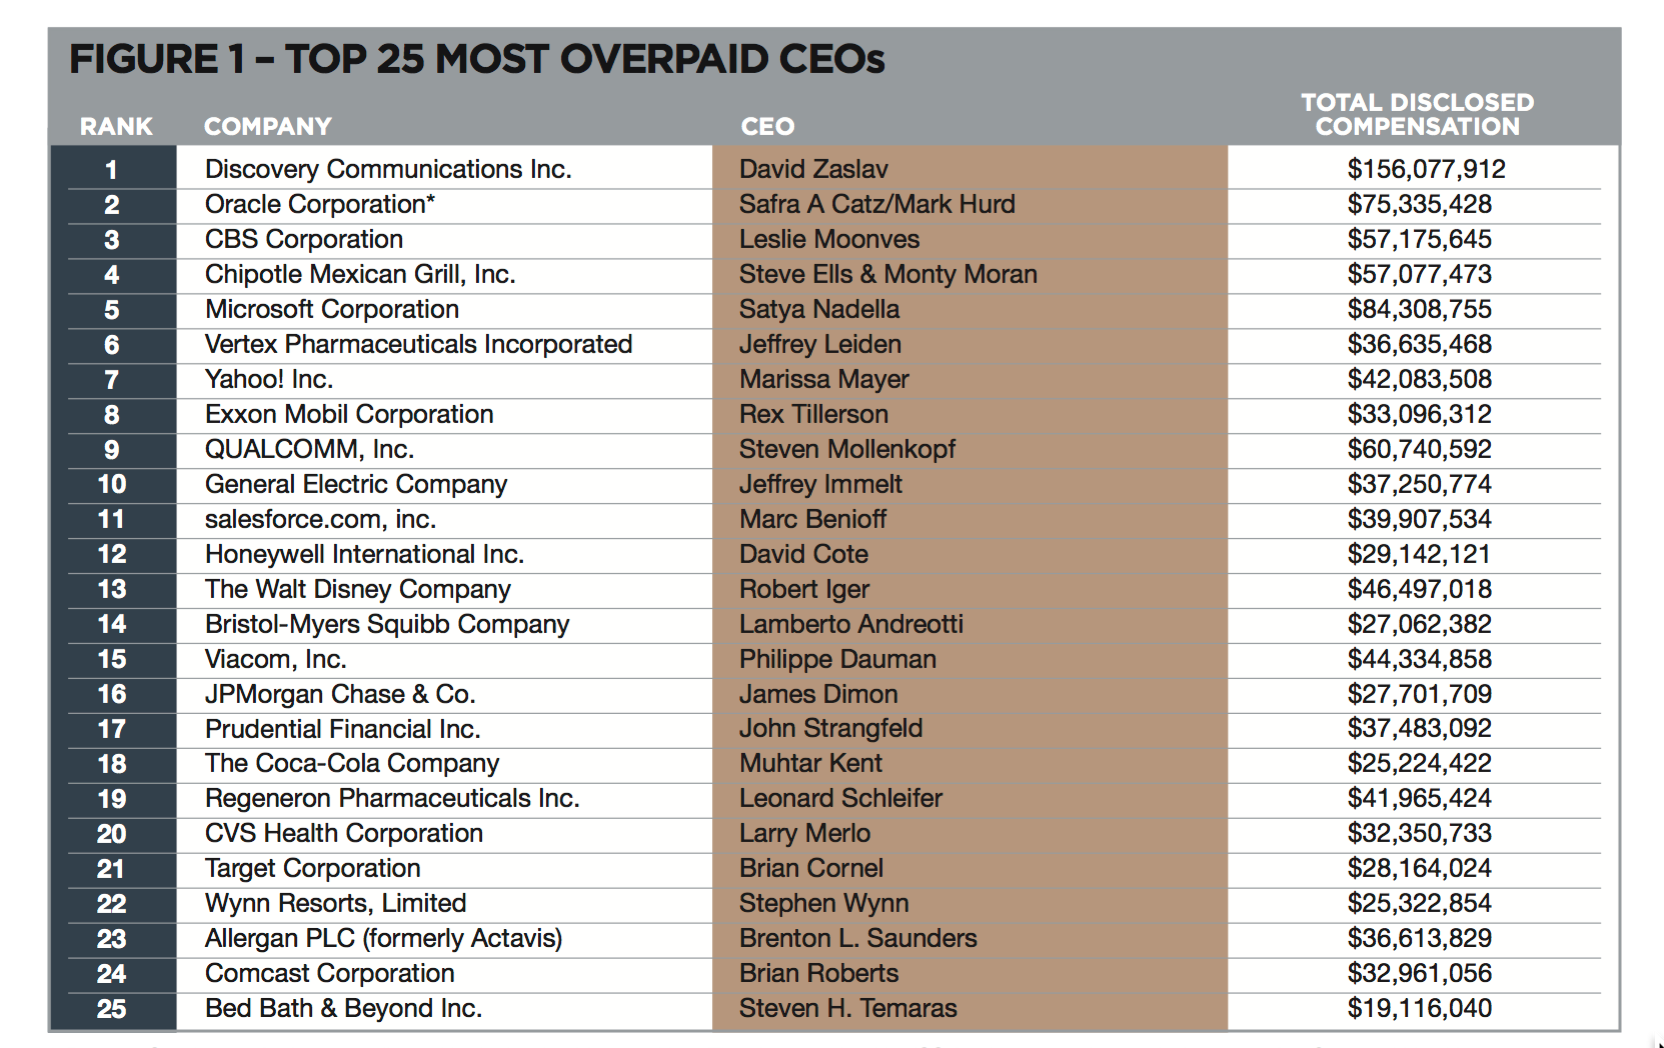 top 25 overpaid CEOs